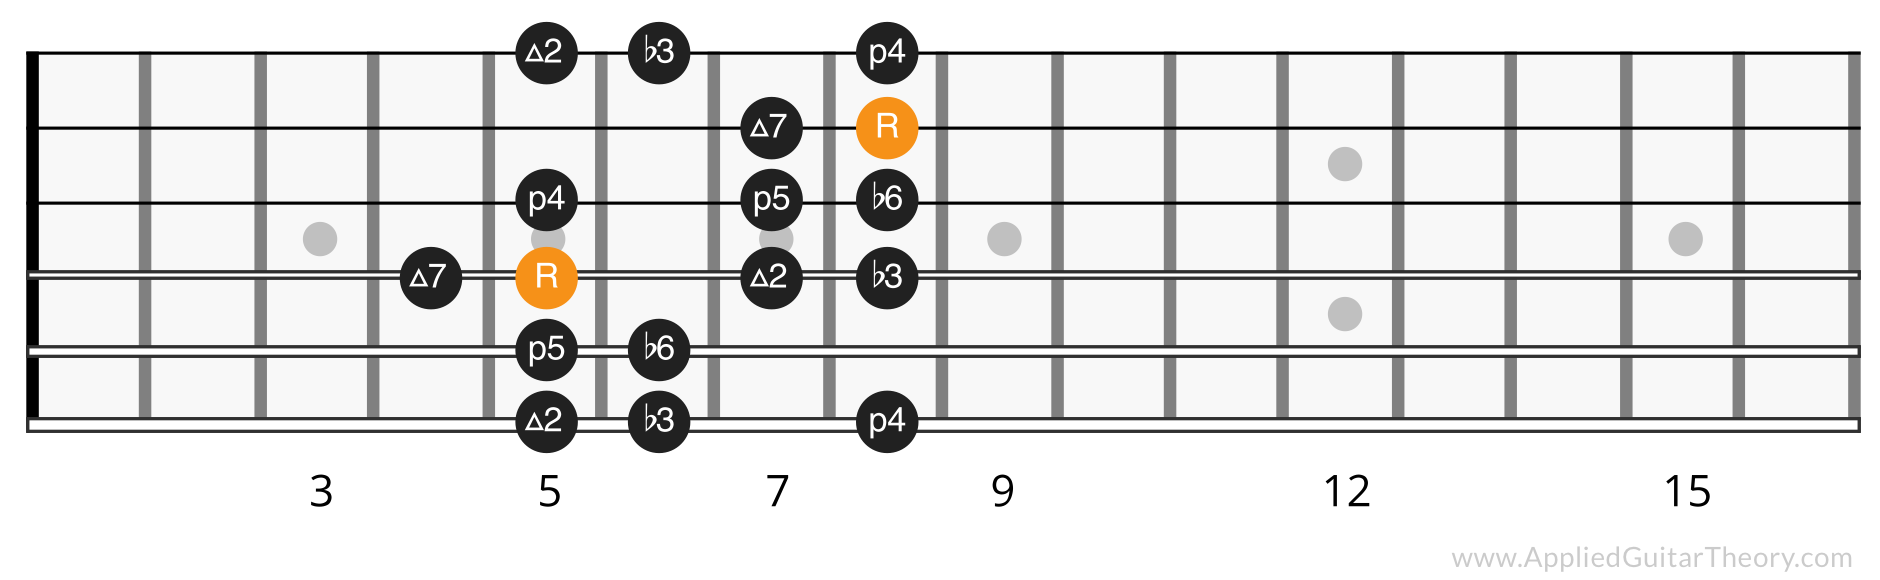 Harmonic minor scale position 2